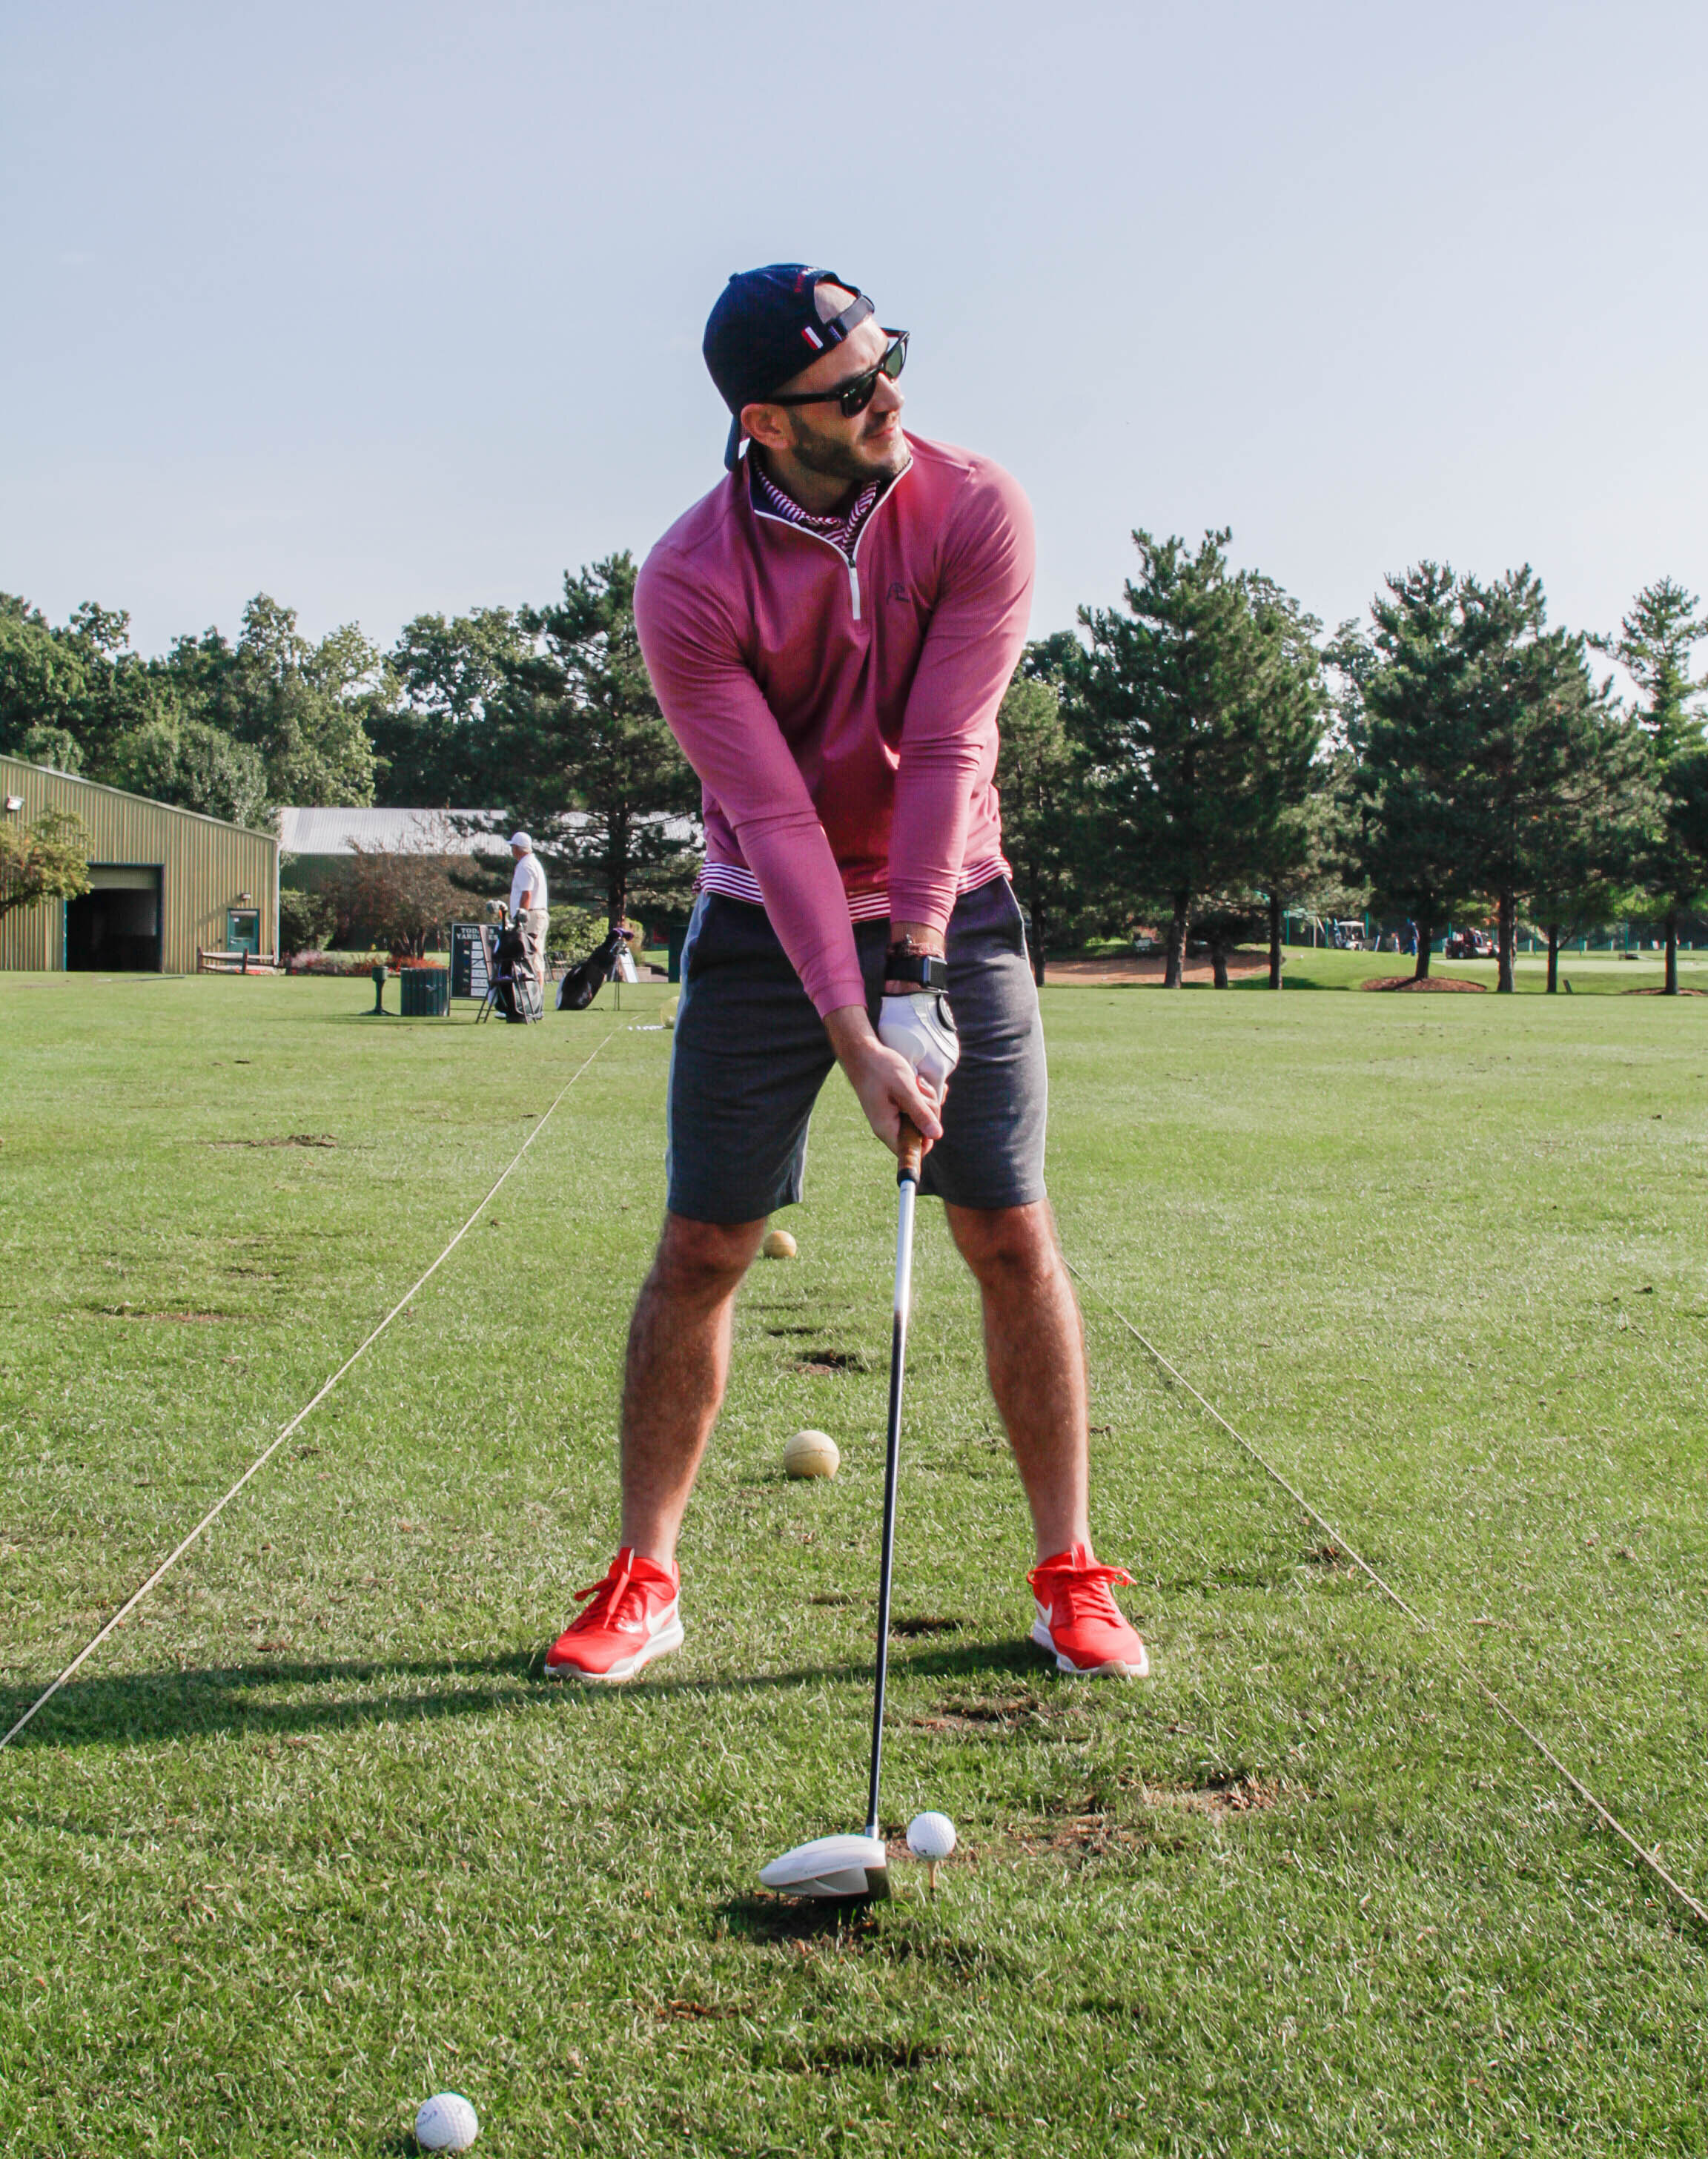 Golf Driving Range Outfit Ideas For Men